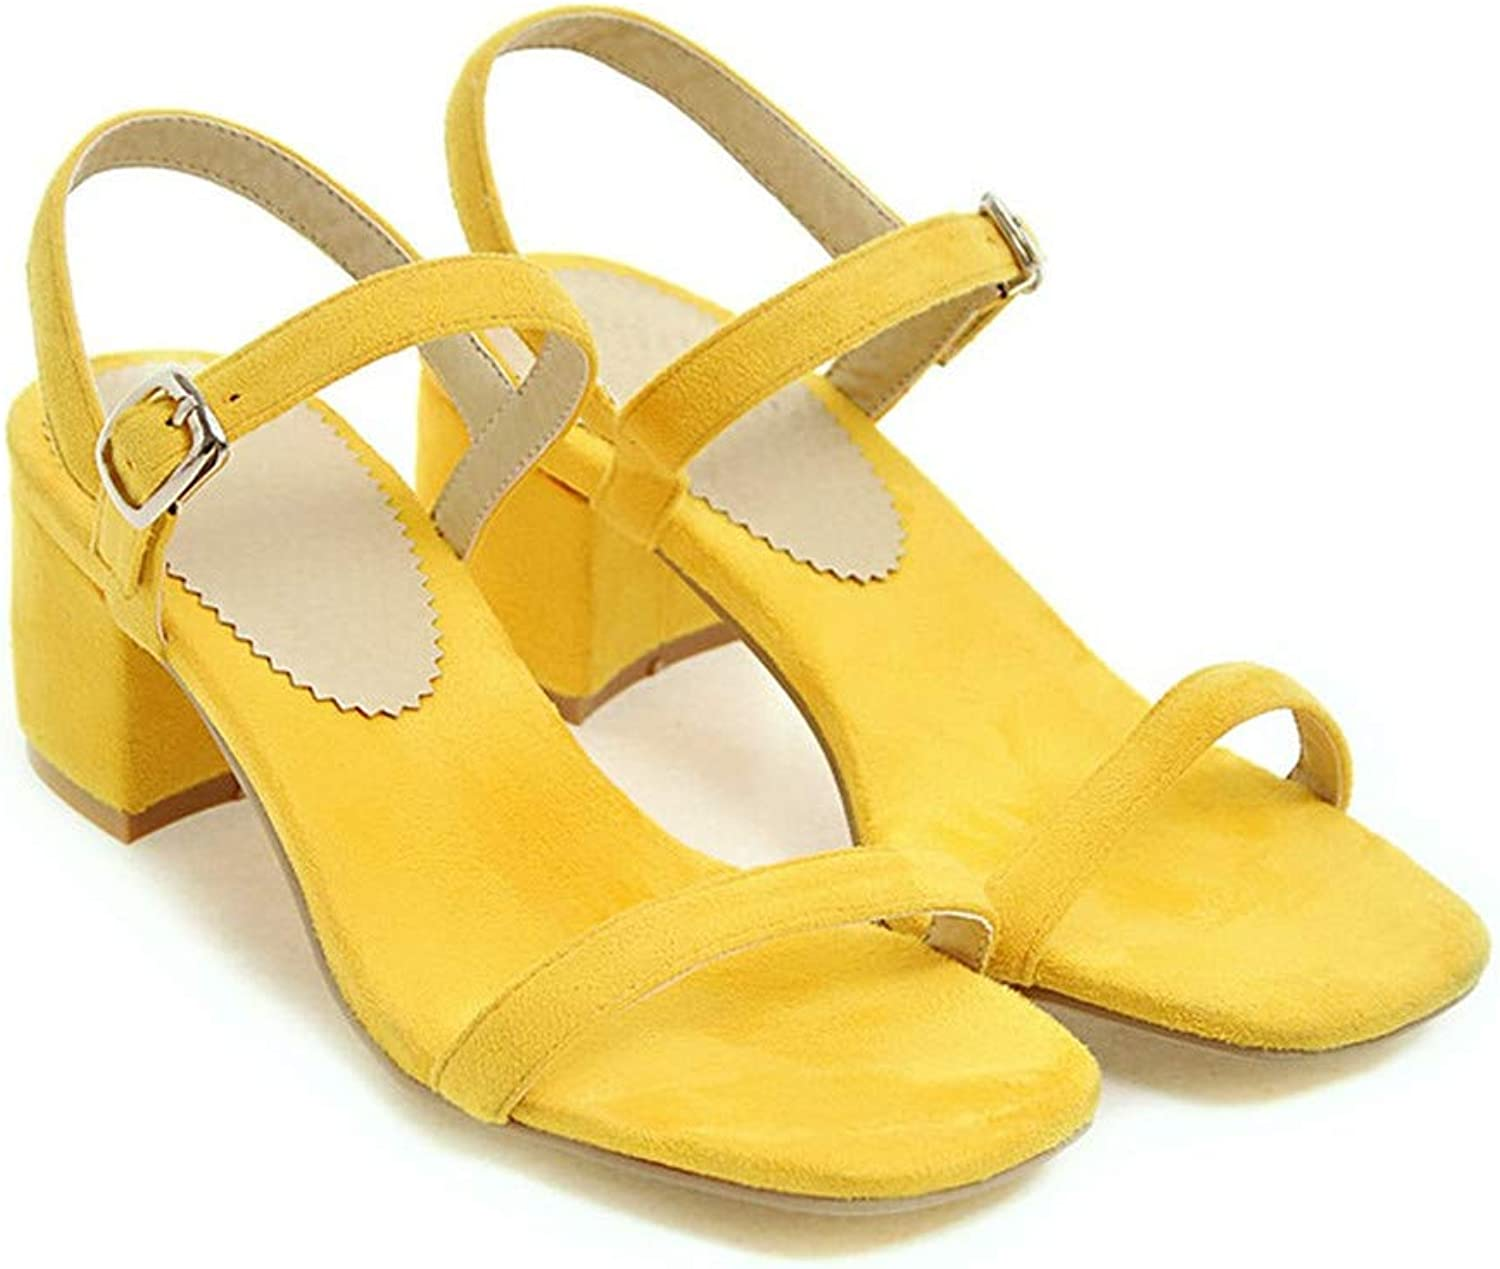 GAO-GEN1 shoes Women Sandals Summer Chunky Heel Sandals Open Toe Buckle Party Mid Heels Yellow Red Plus Size 9 42 43